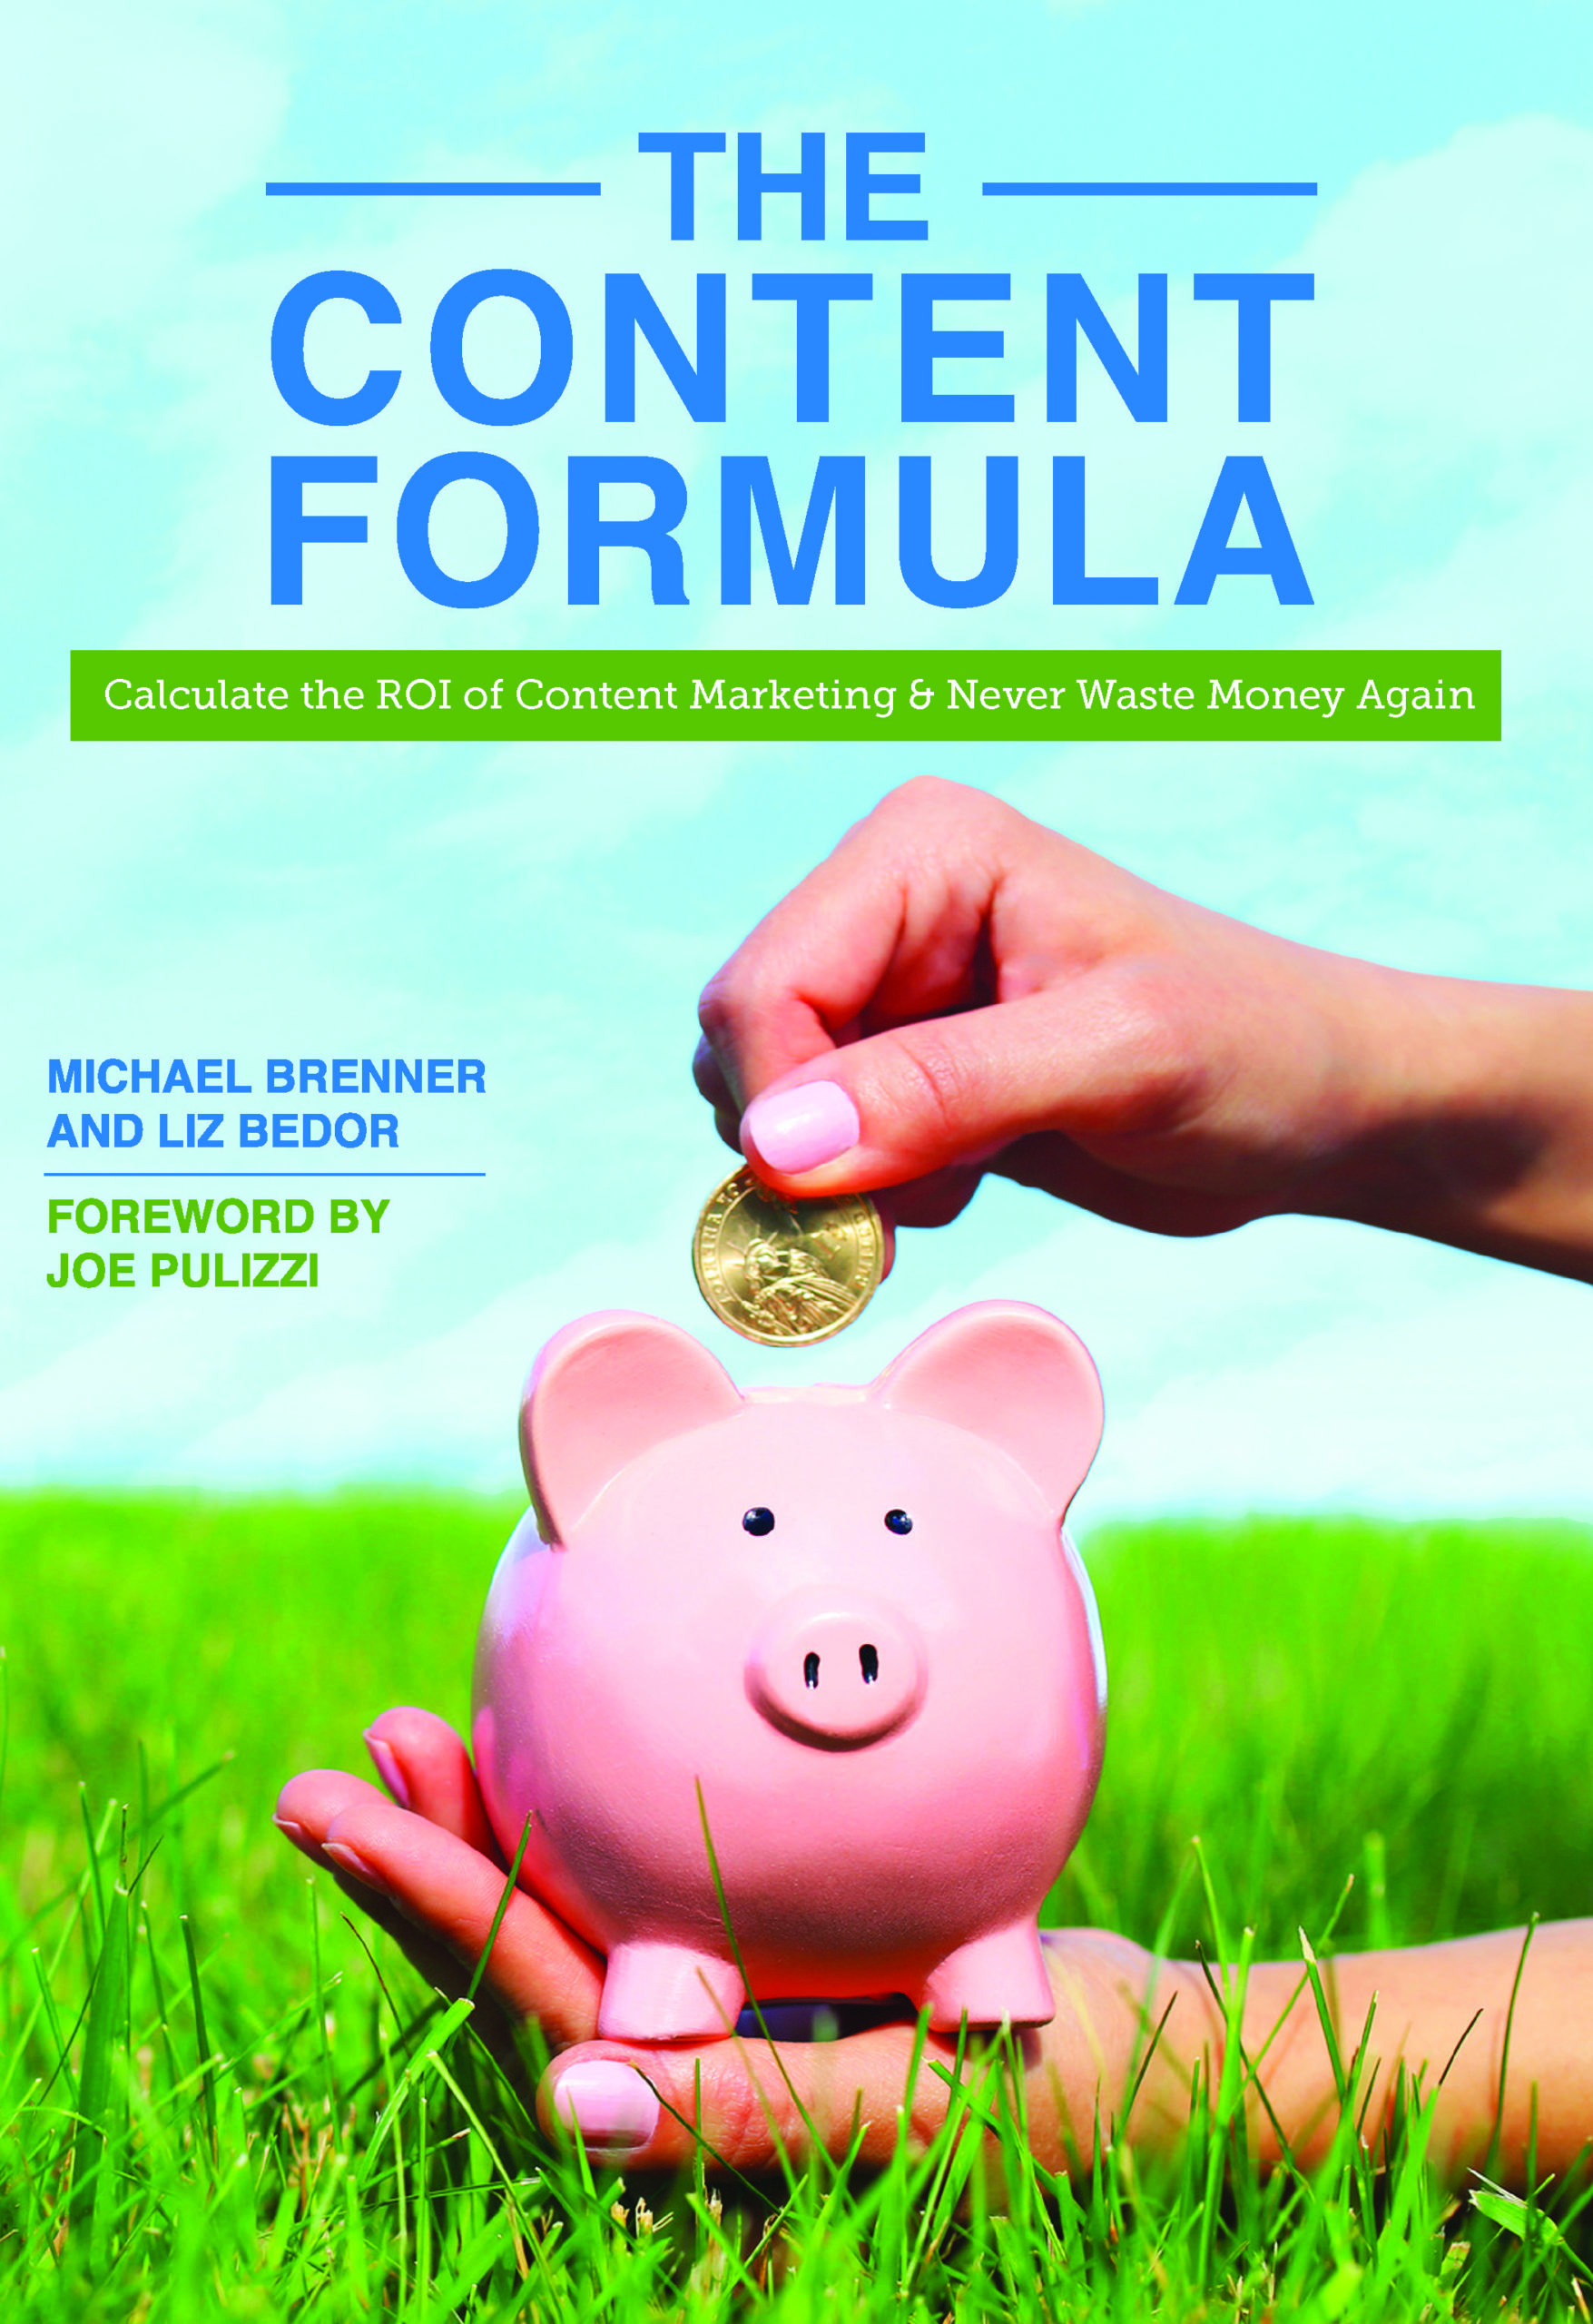 Announcing The Launch Of 'The Content Formula' Book